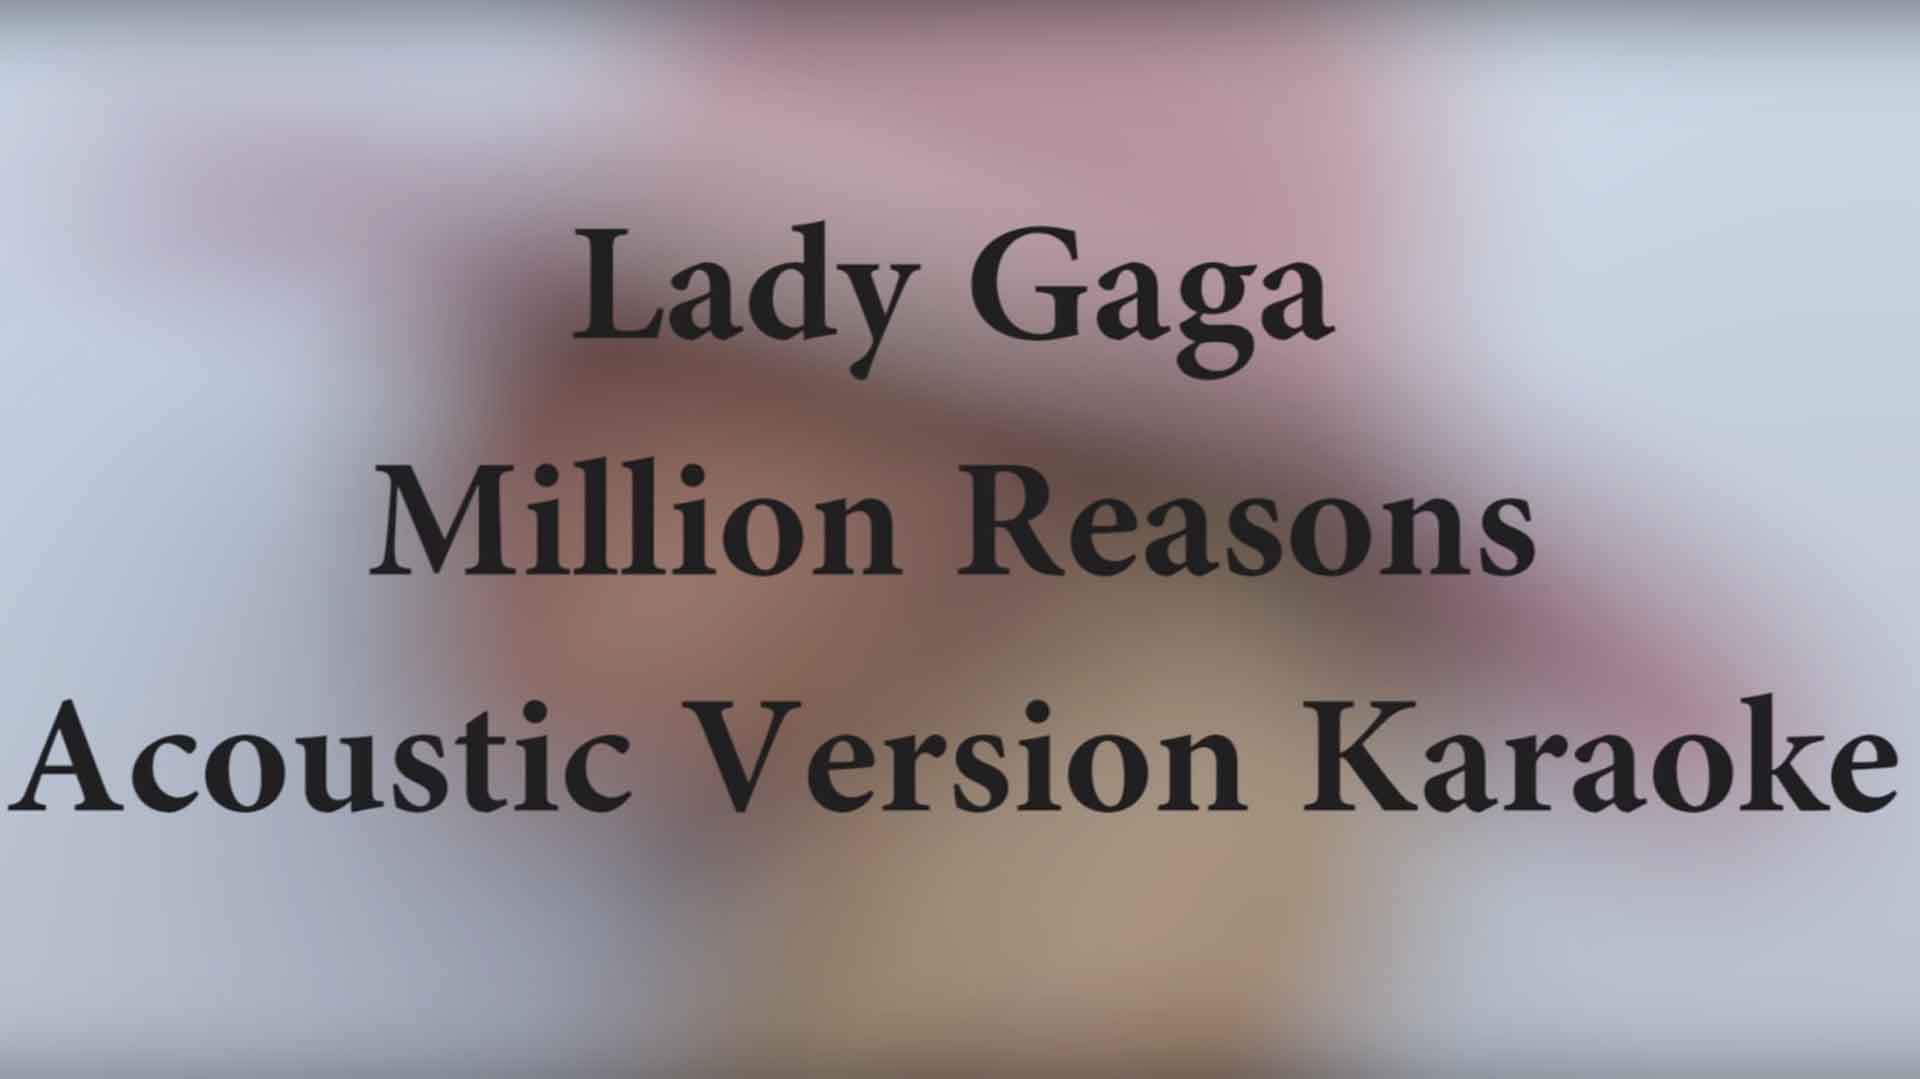 Mp3 reasons gaga hundred download million lady Download Lady